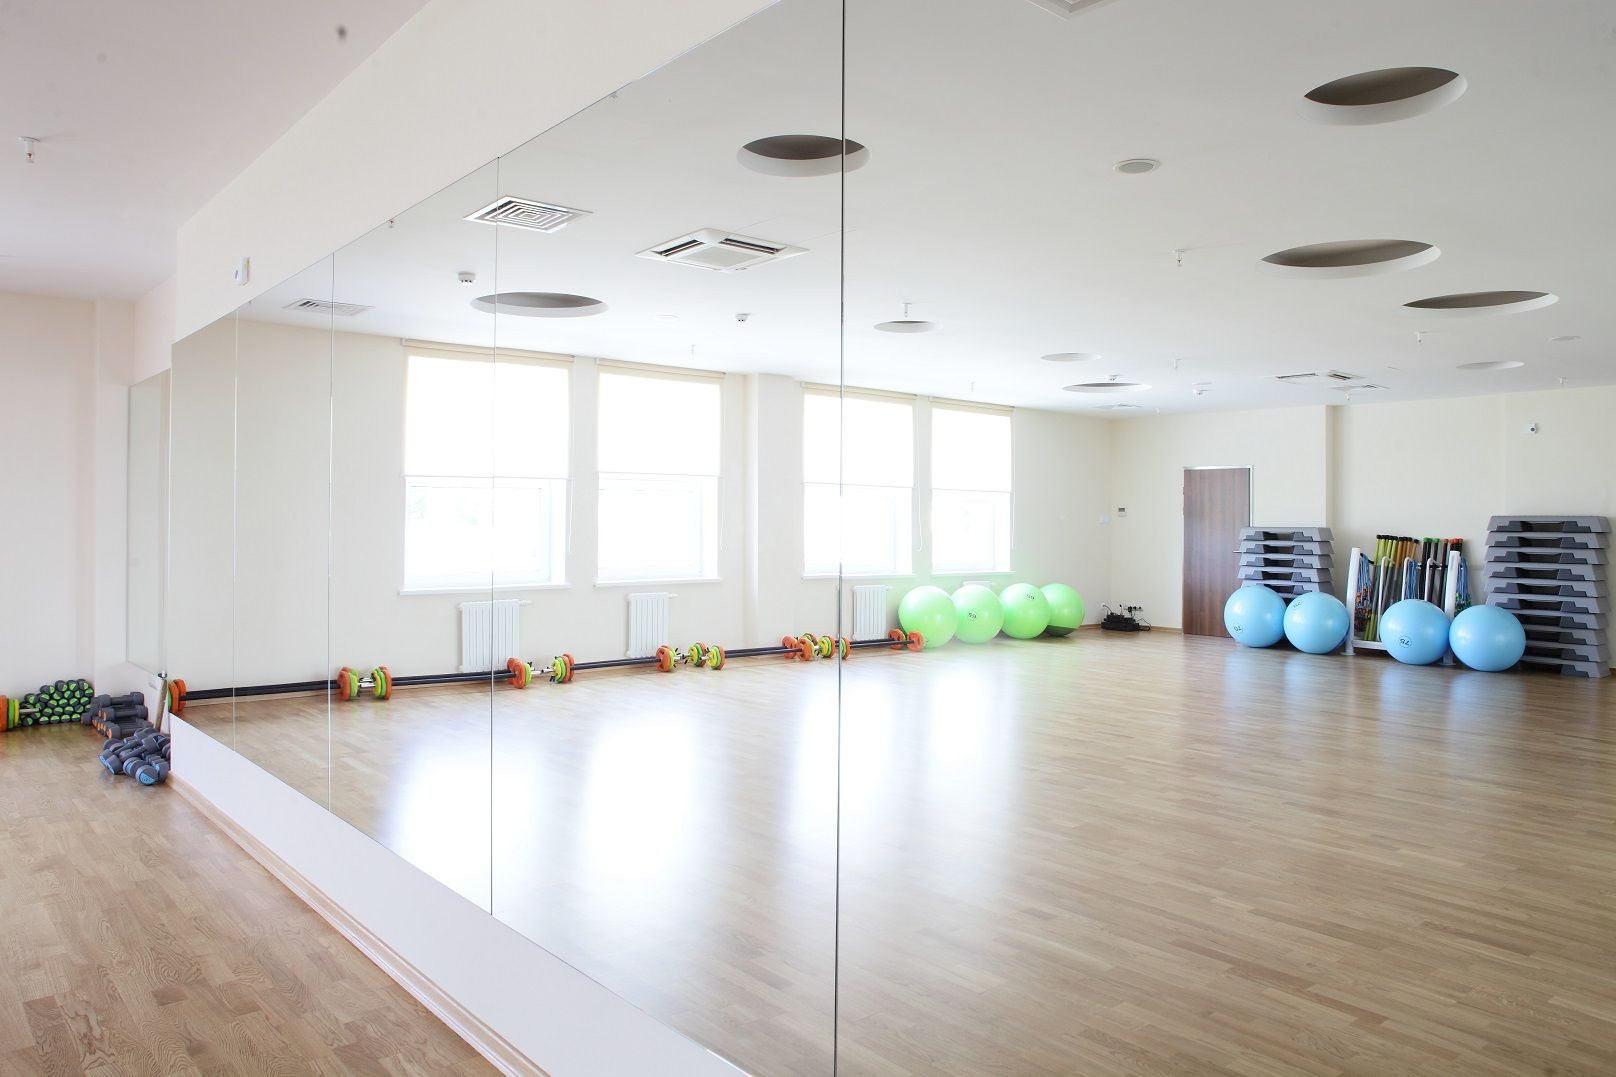 Set Up Your Own Gym And Dance Studio With Great Quality Mirror Pertaining To Widely Used Dance Studio Wall Mirrors (Gallery 12 of 20)